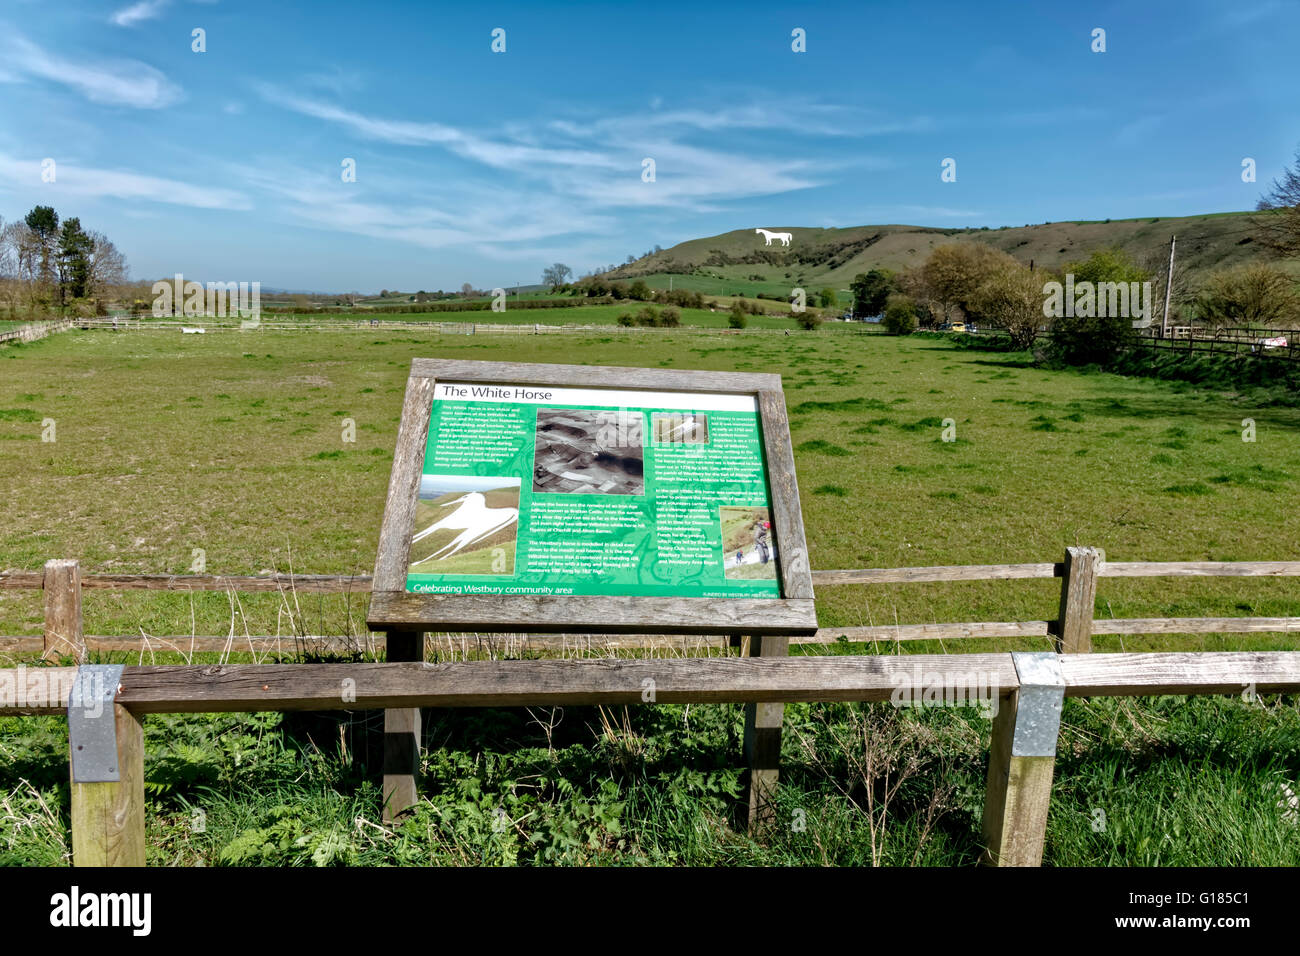 The Westbury White Horse and Information Board, Wiltshire, United Kingdom. Stock Photo